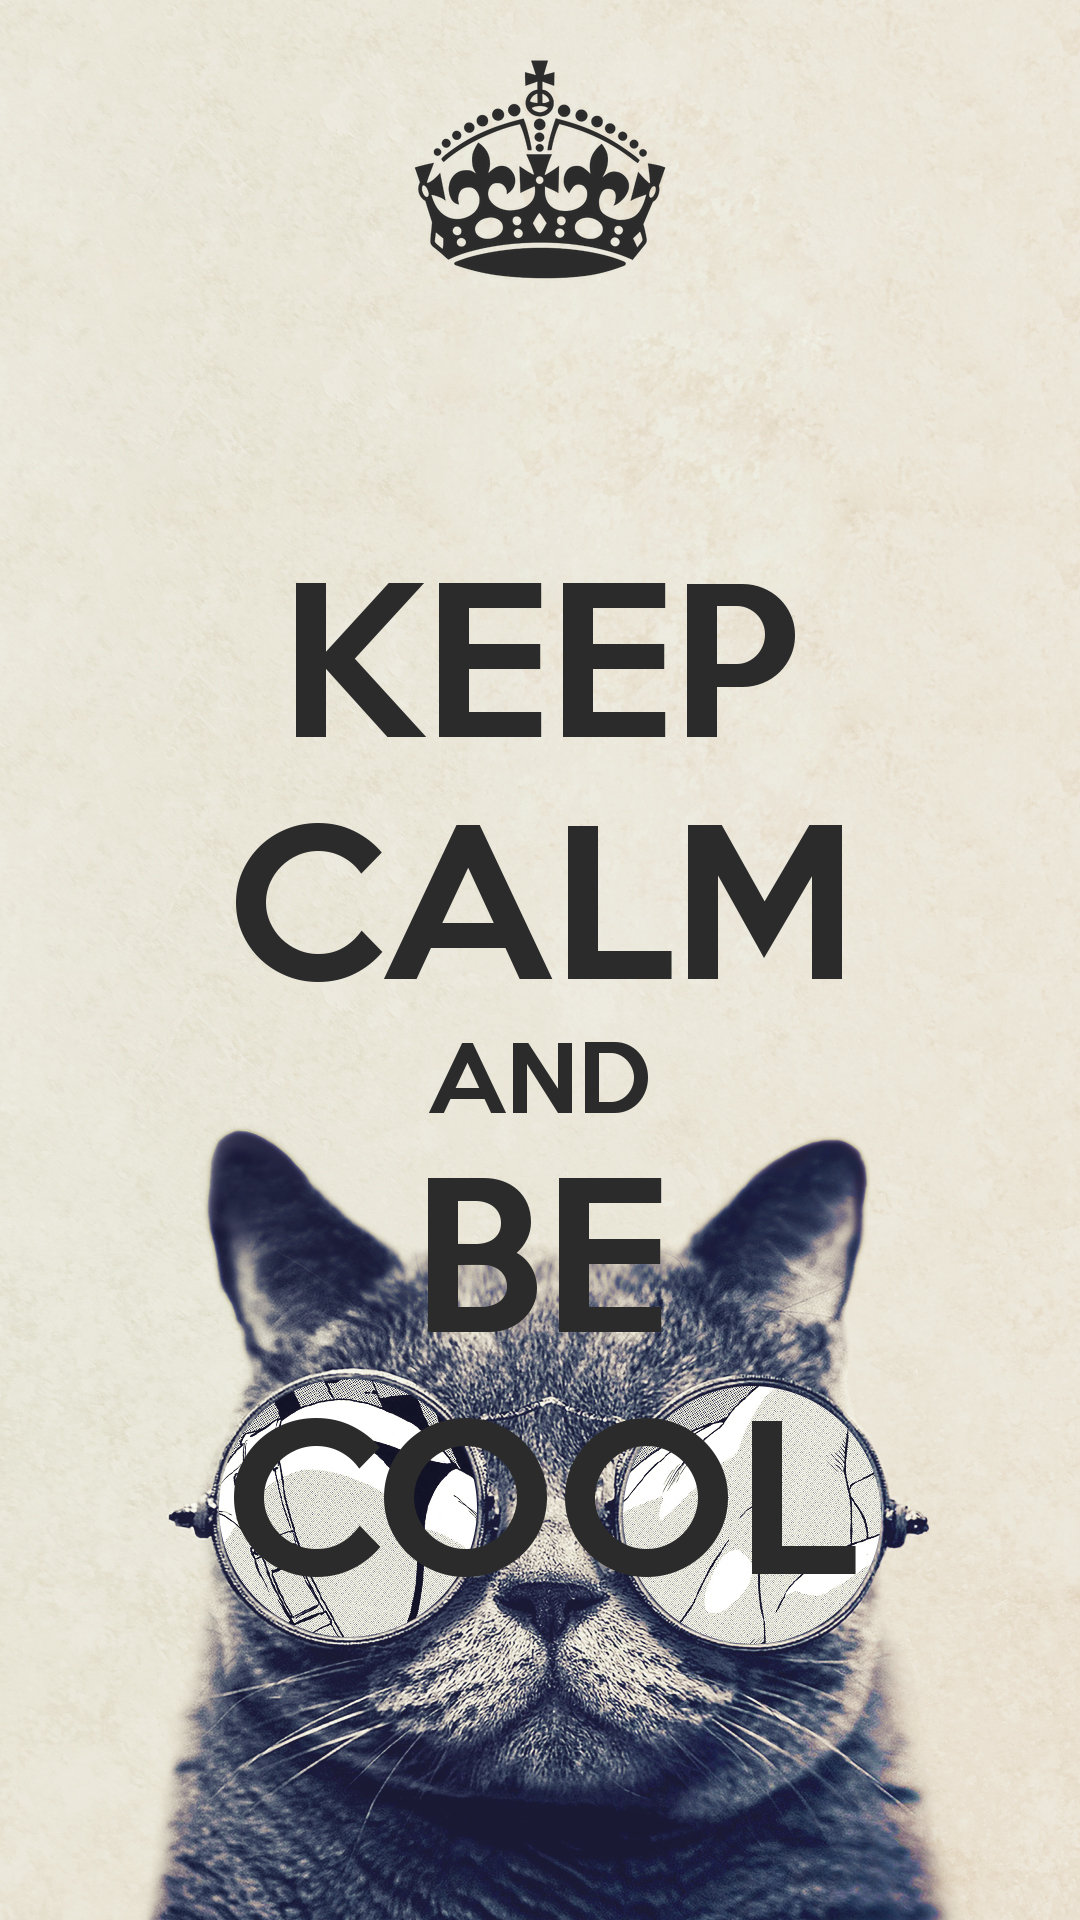 Poster A2 size | Traditional Keep Calm posters | Keep calm